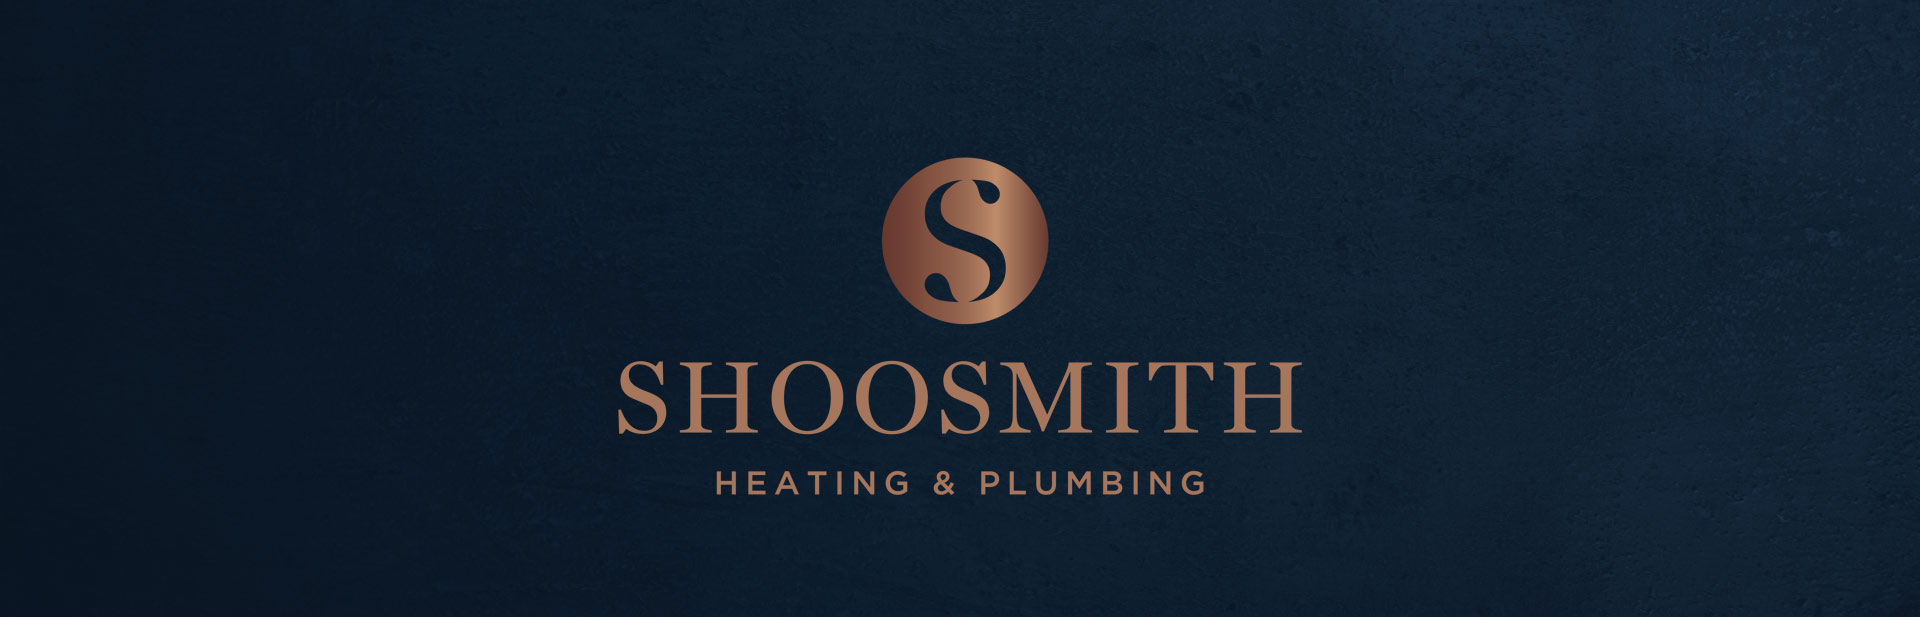 Shoosmith Heating & Plumbing